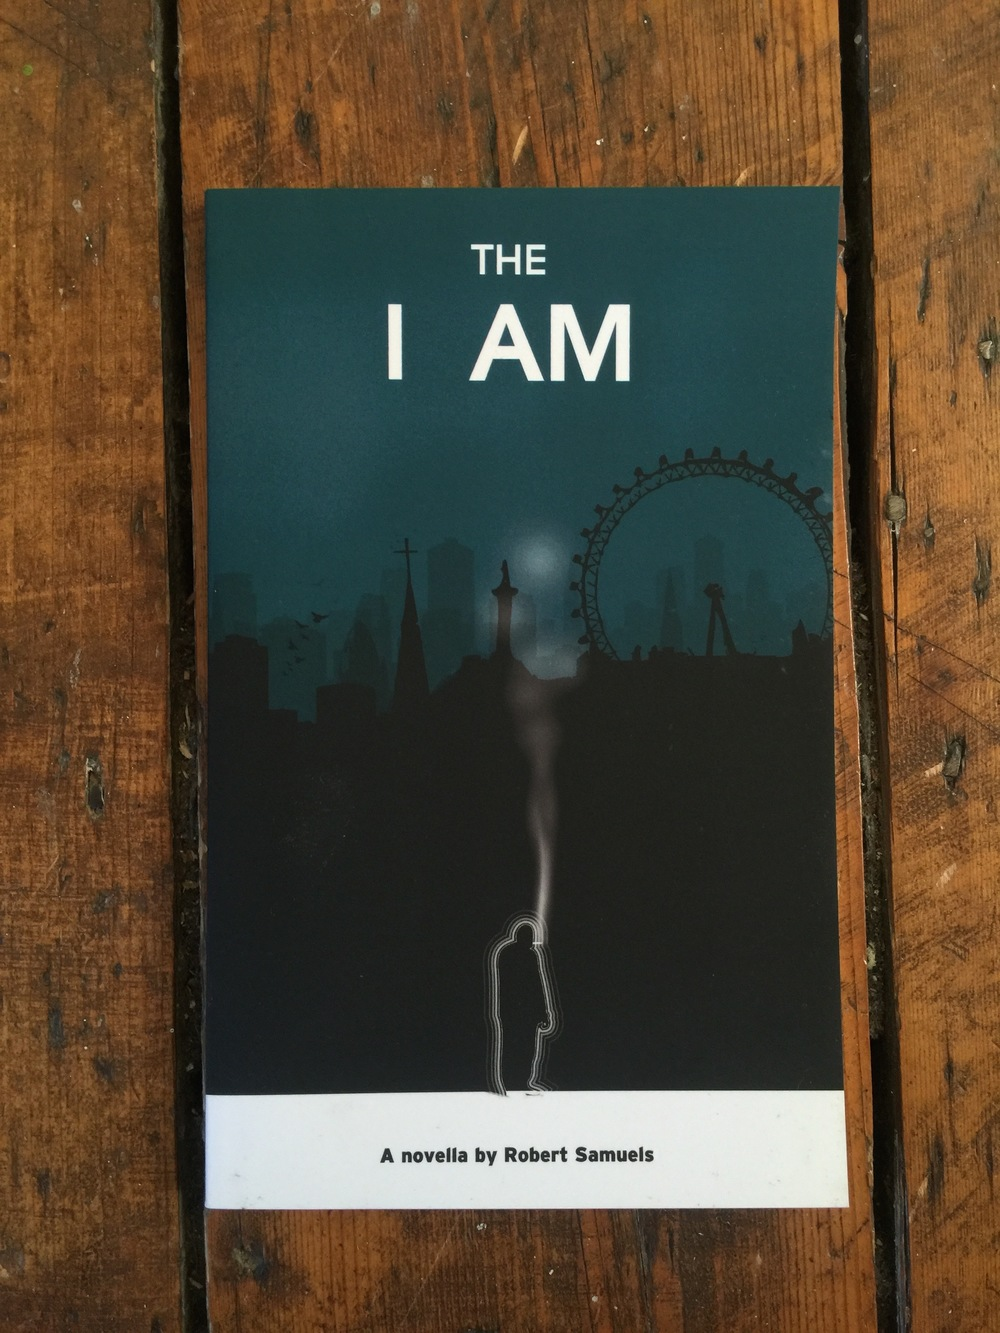 The I am novella